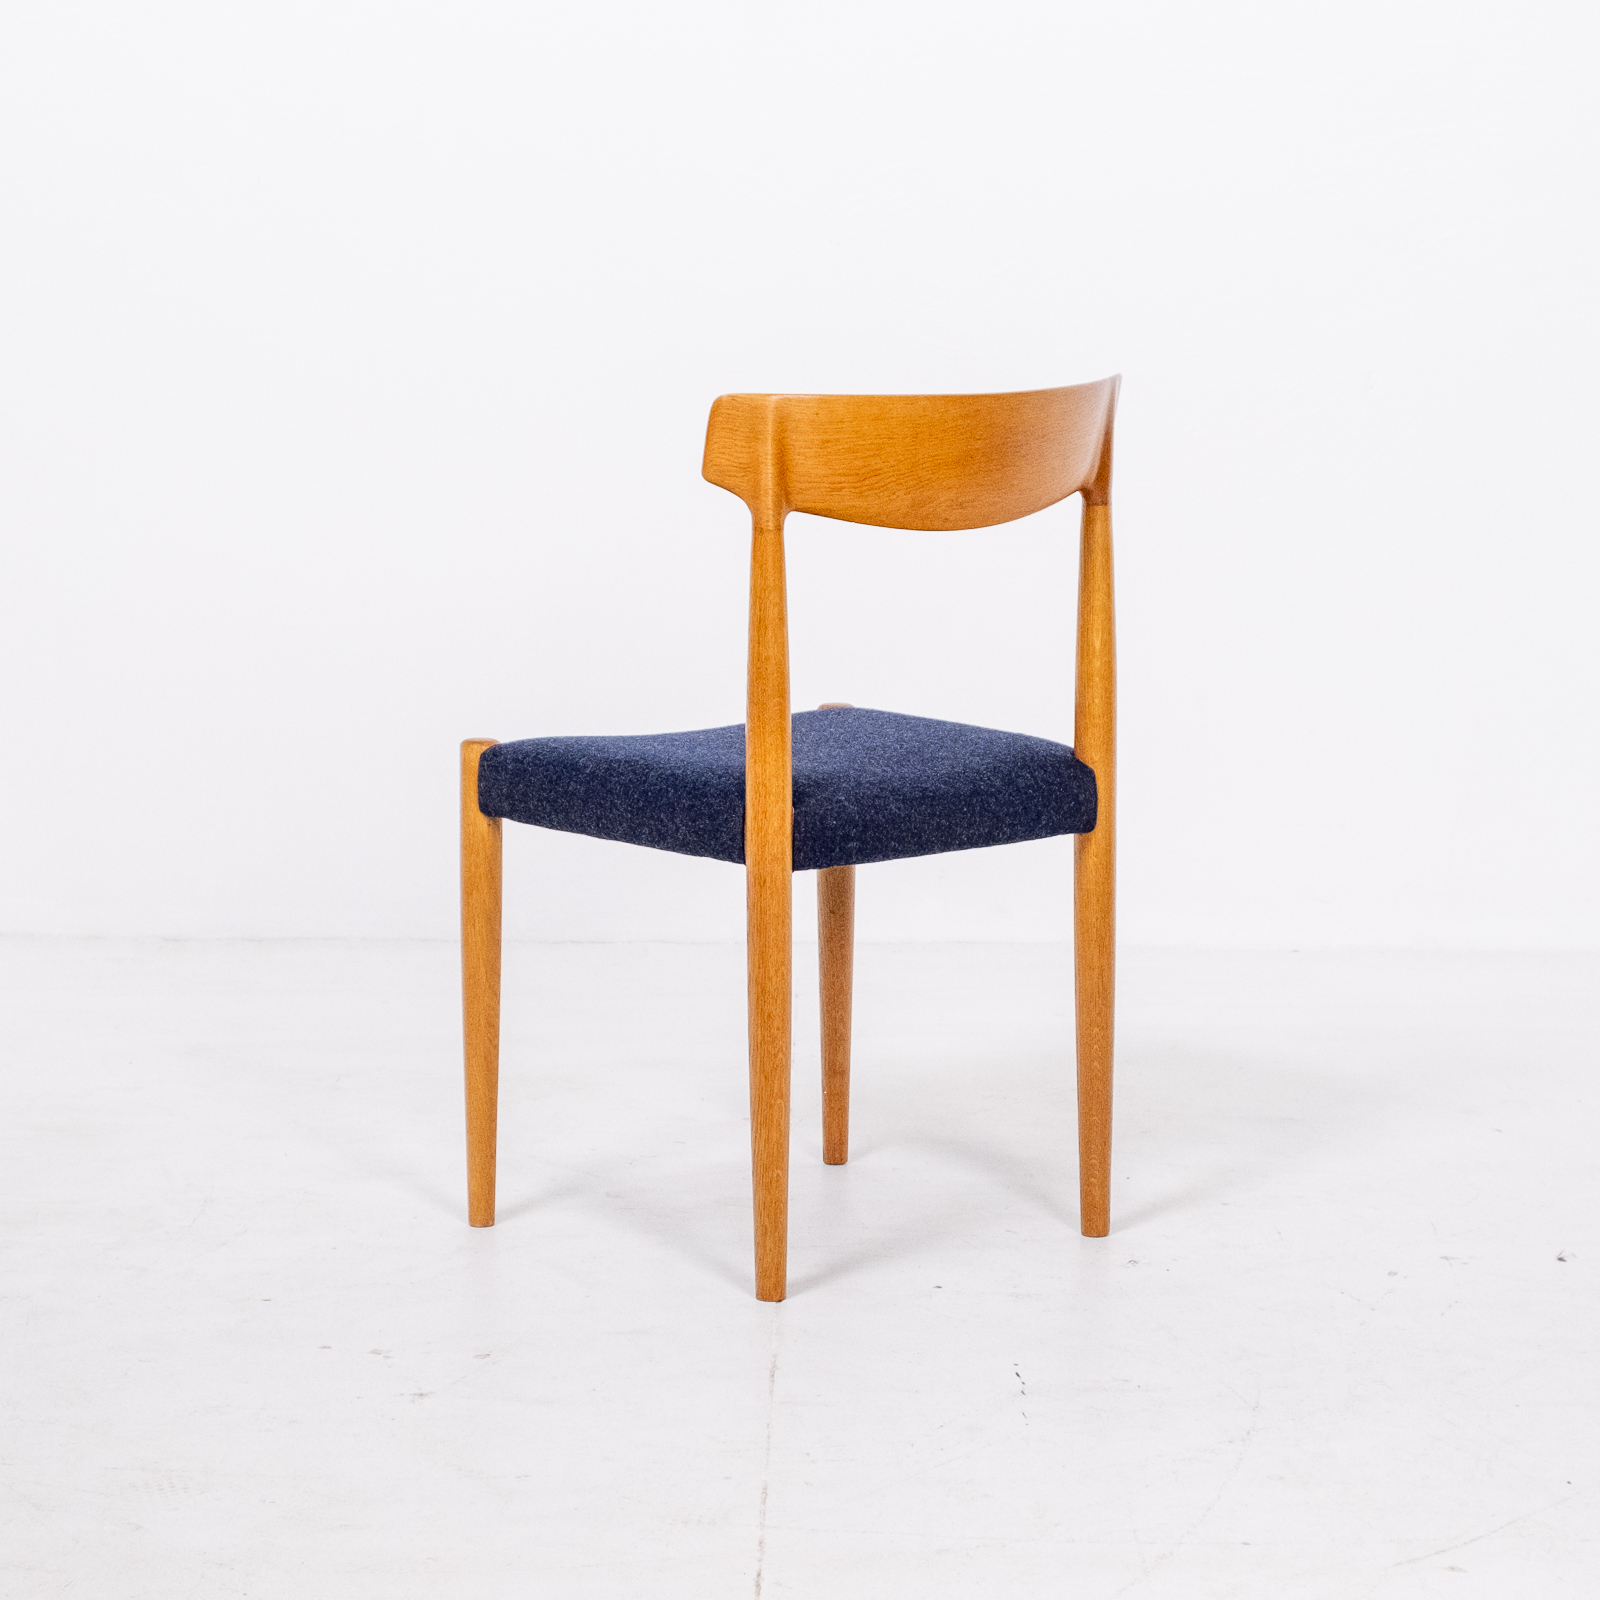 Set Of 6 Dining Chairs By Borge Mogensen For Fdb Mobler In Oak, 1960s, Denmark 00004